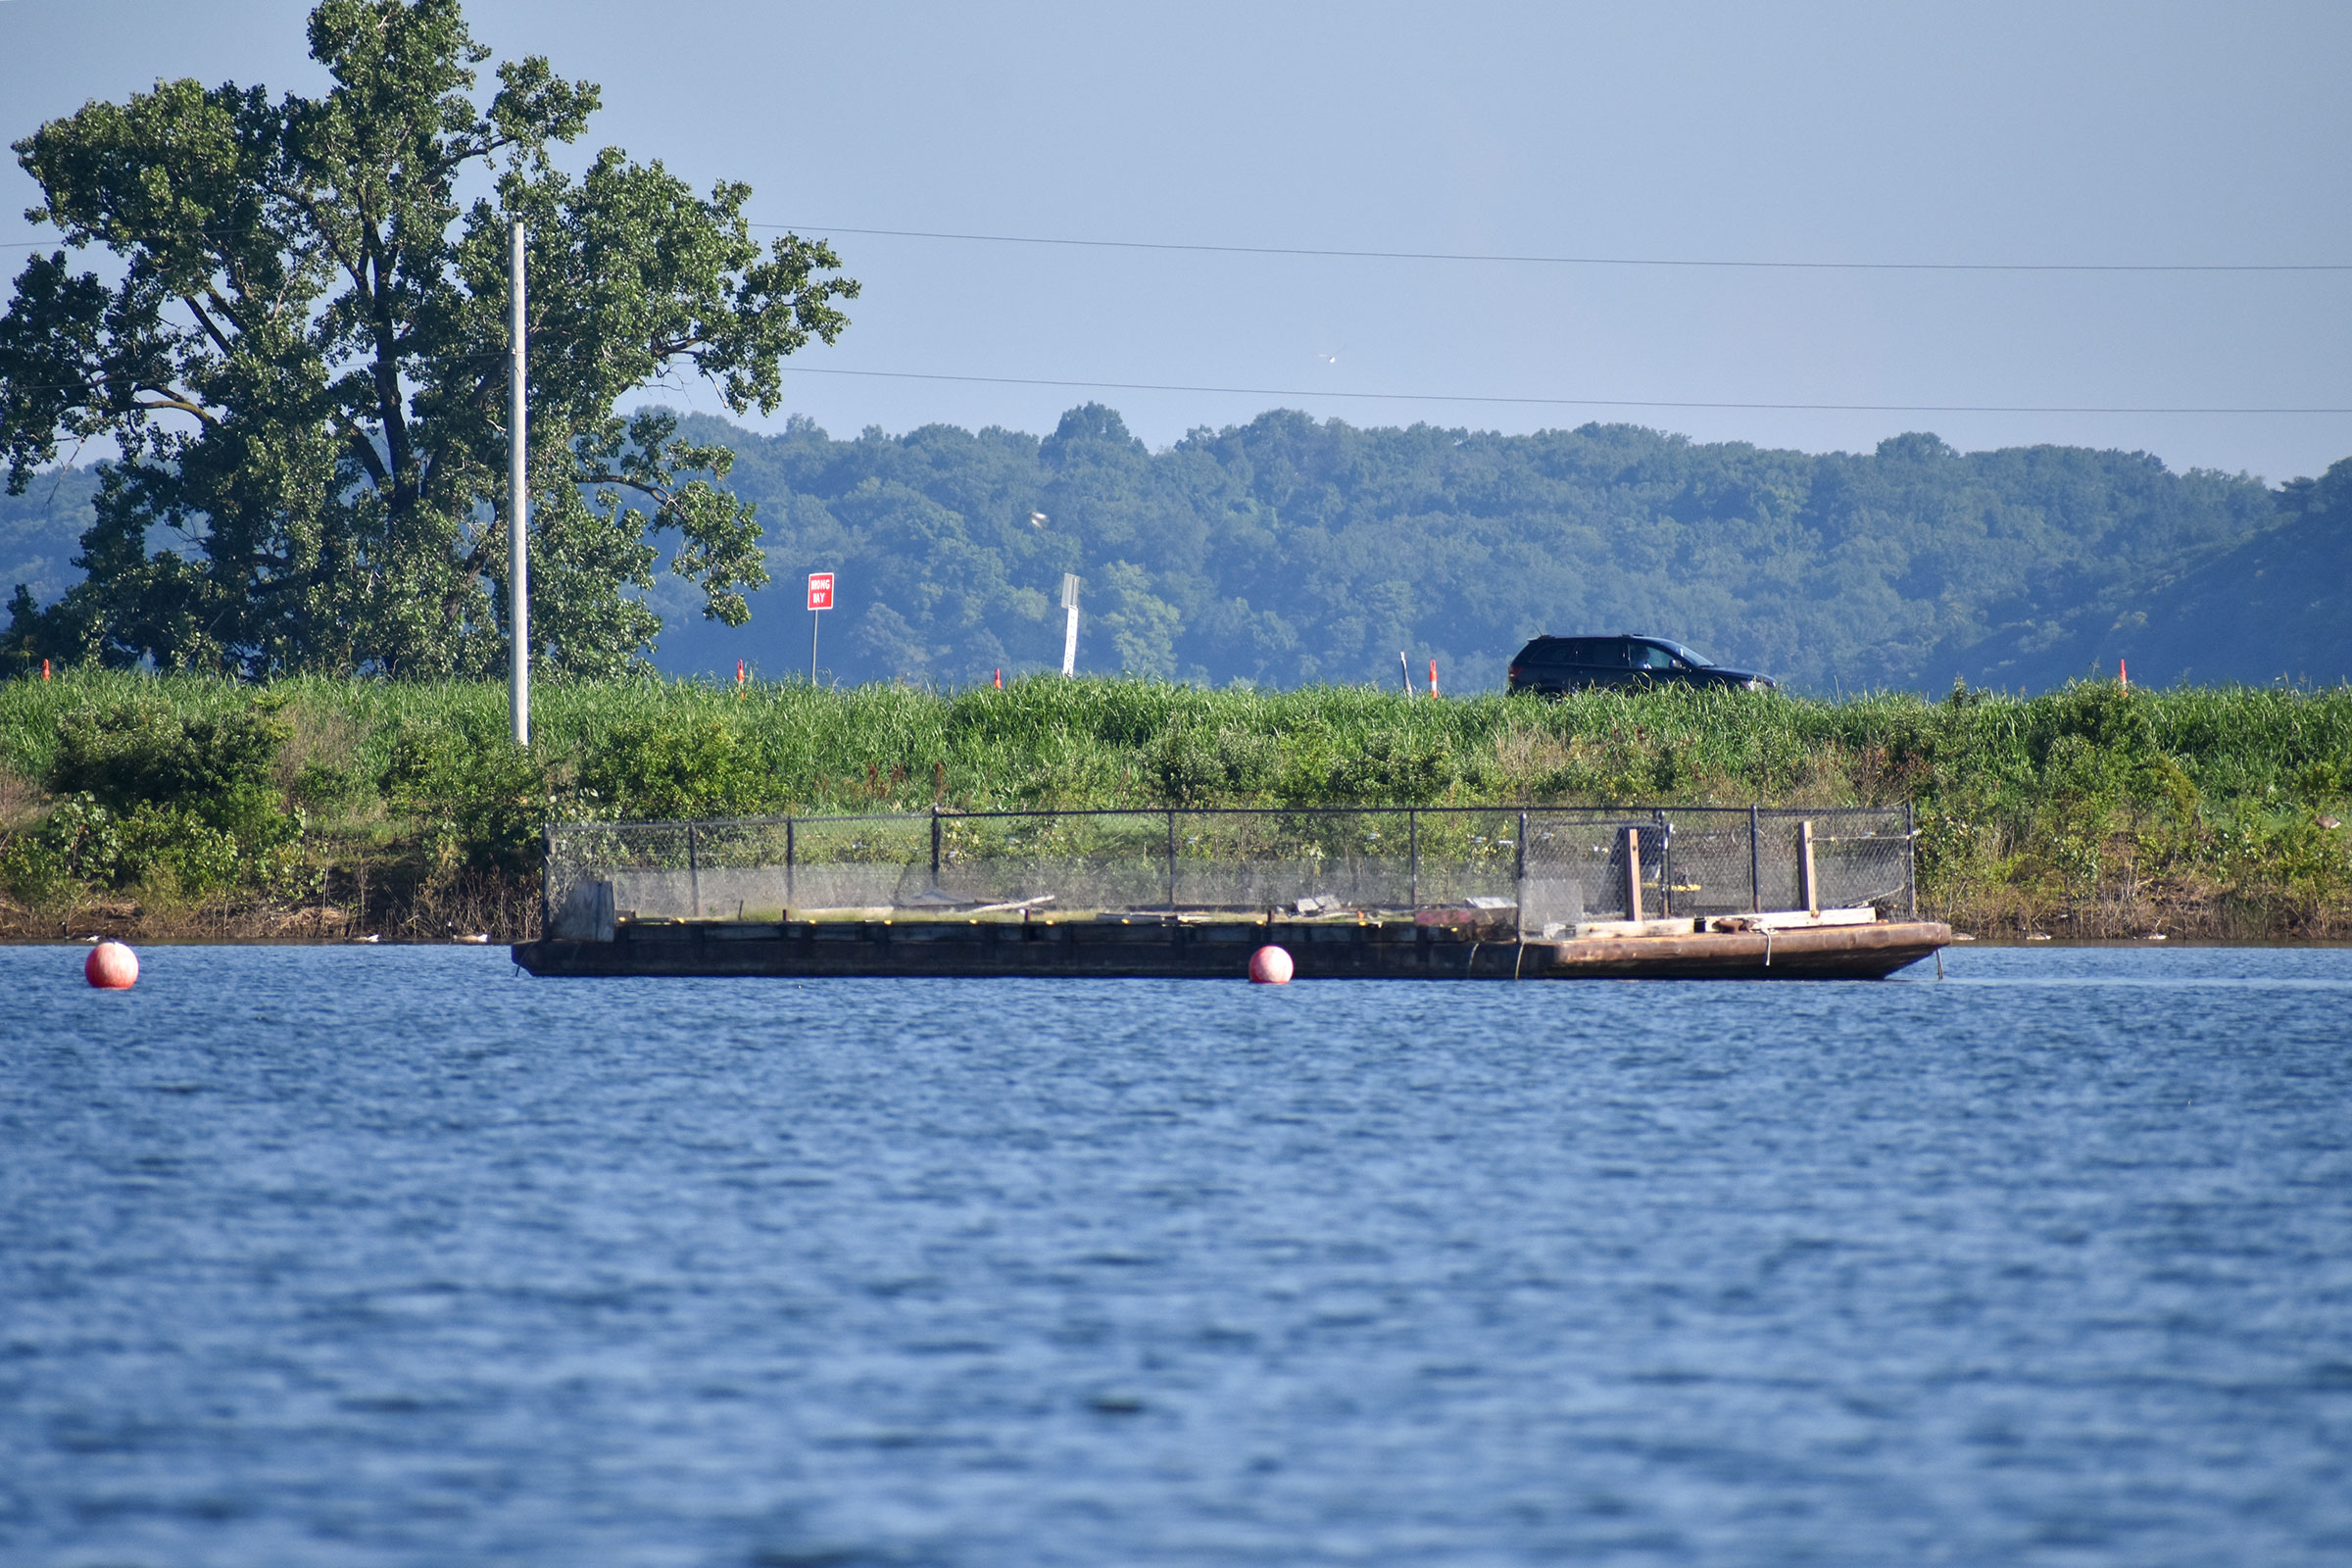 A nesting barge floats in a pond along the Mississippi River near St. Louis. The barge is a floating flat surface covered in sand with a one-meter fence to keep predators out. Its sole purpose is to serve as nesting habitat for birds. Tara Hohman